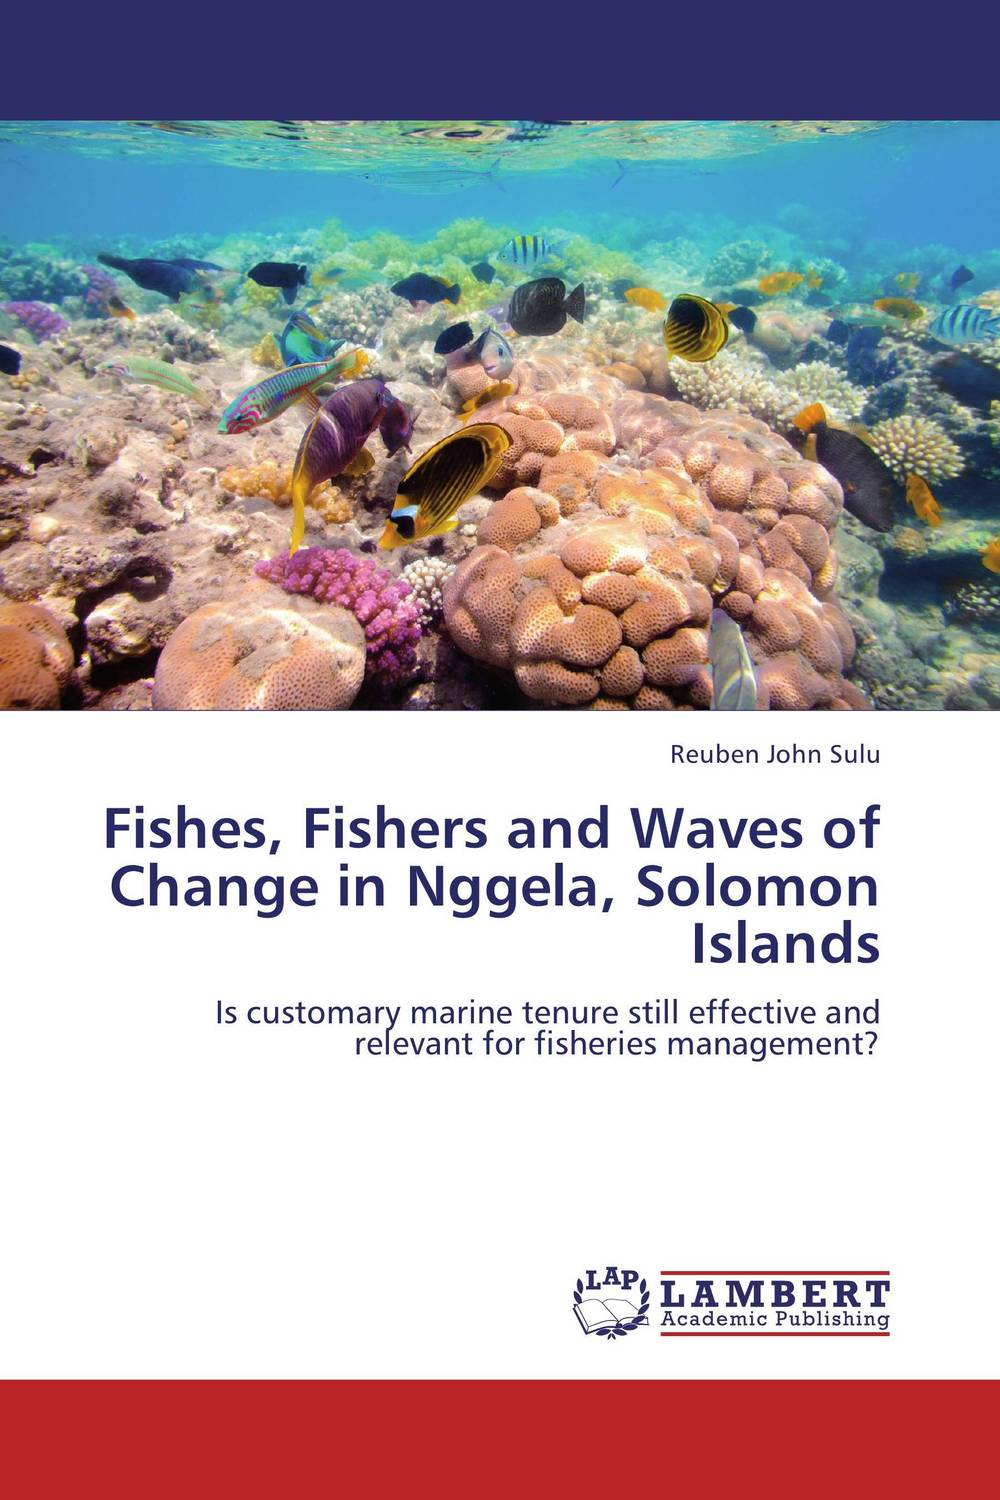 Fishes, Fishers and Waves of Change in Nggela, Solomon Islands toxicity in crustaceans and fishes